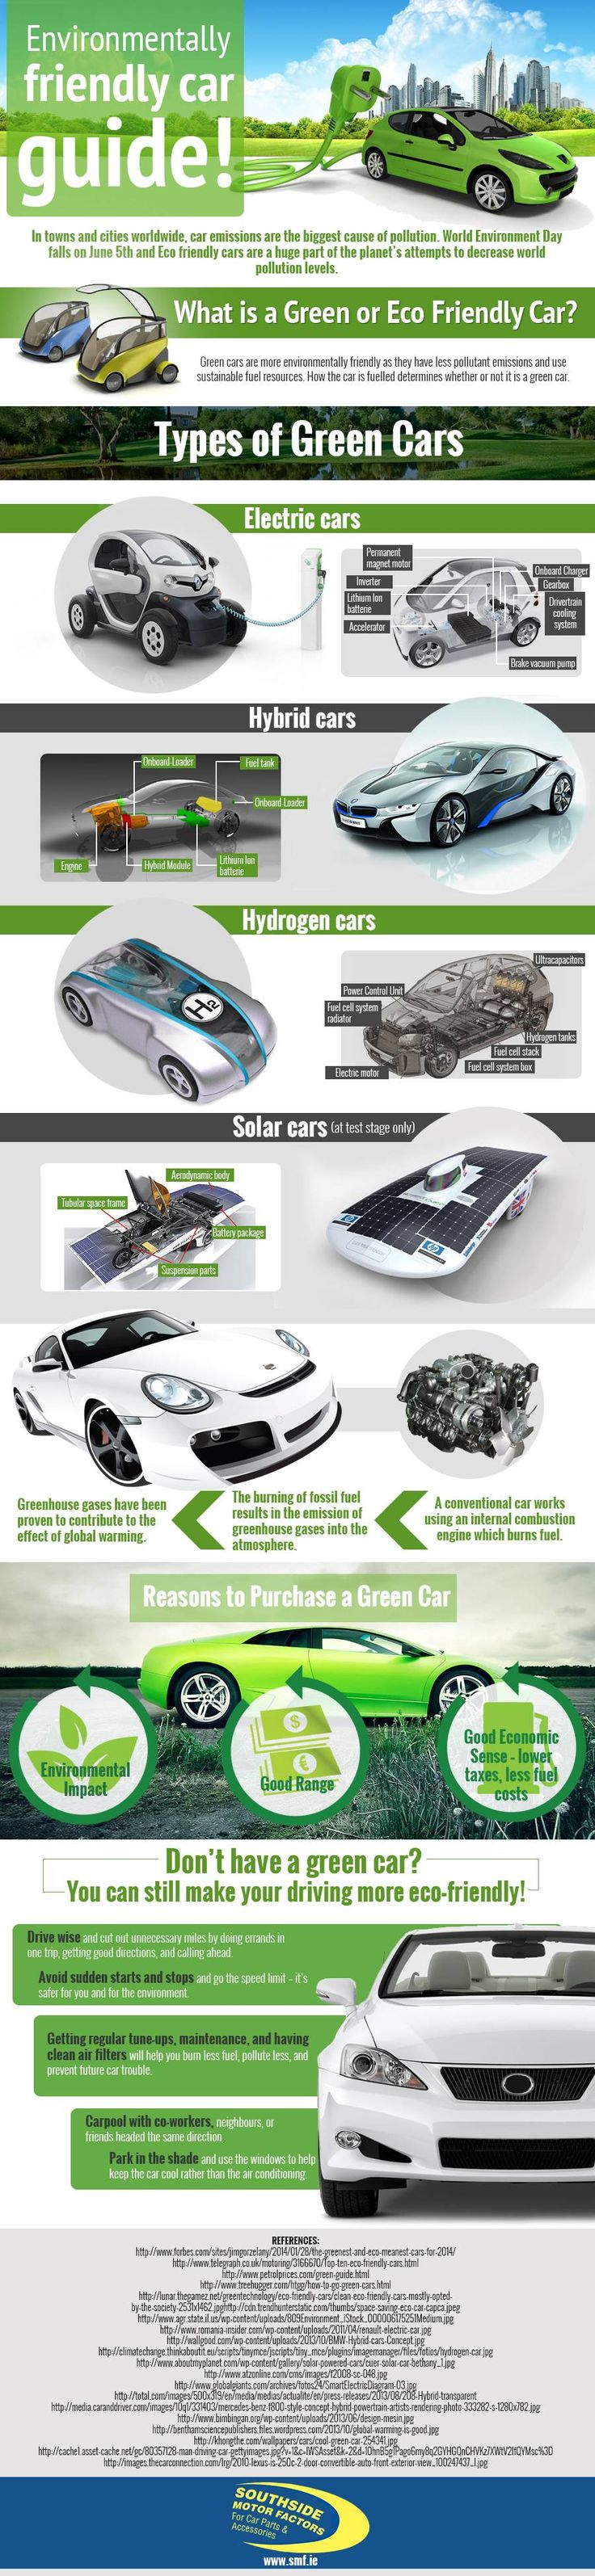 This is a car catalogue everyone should consider. What are your thoughts? #GoGreen #EcoFriendly #Design